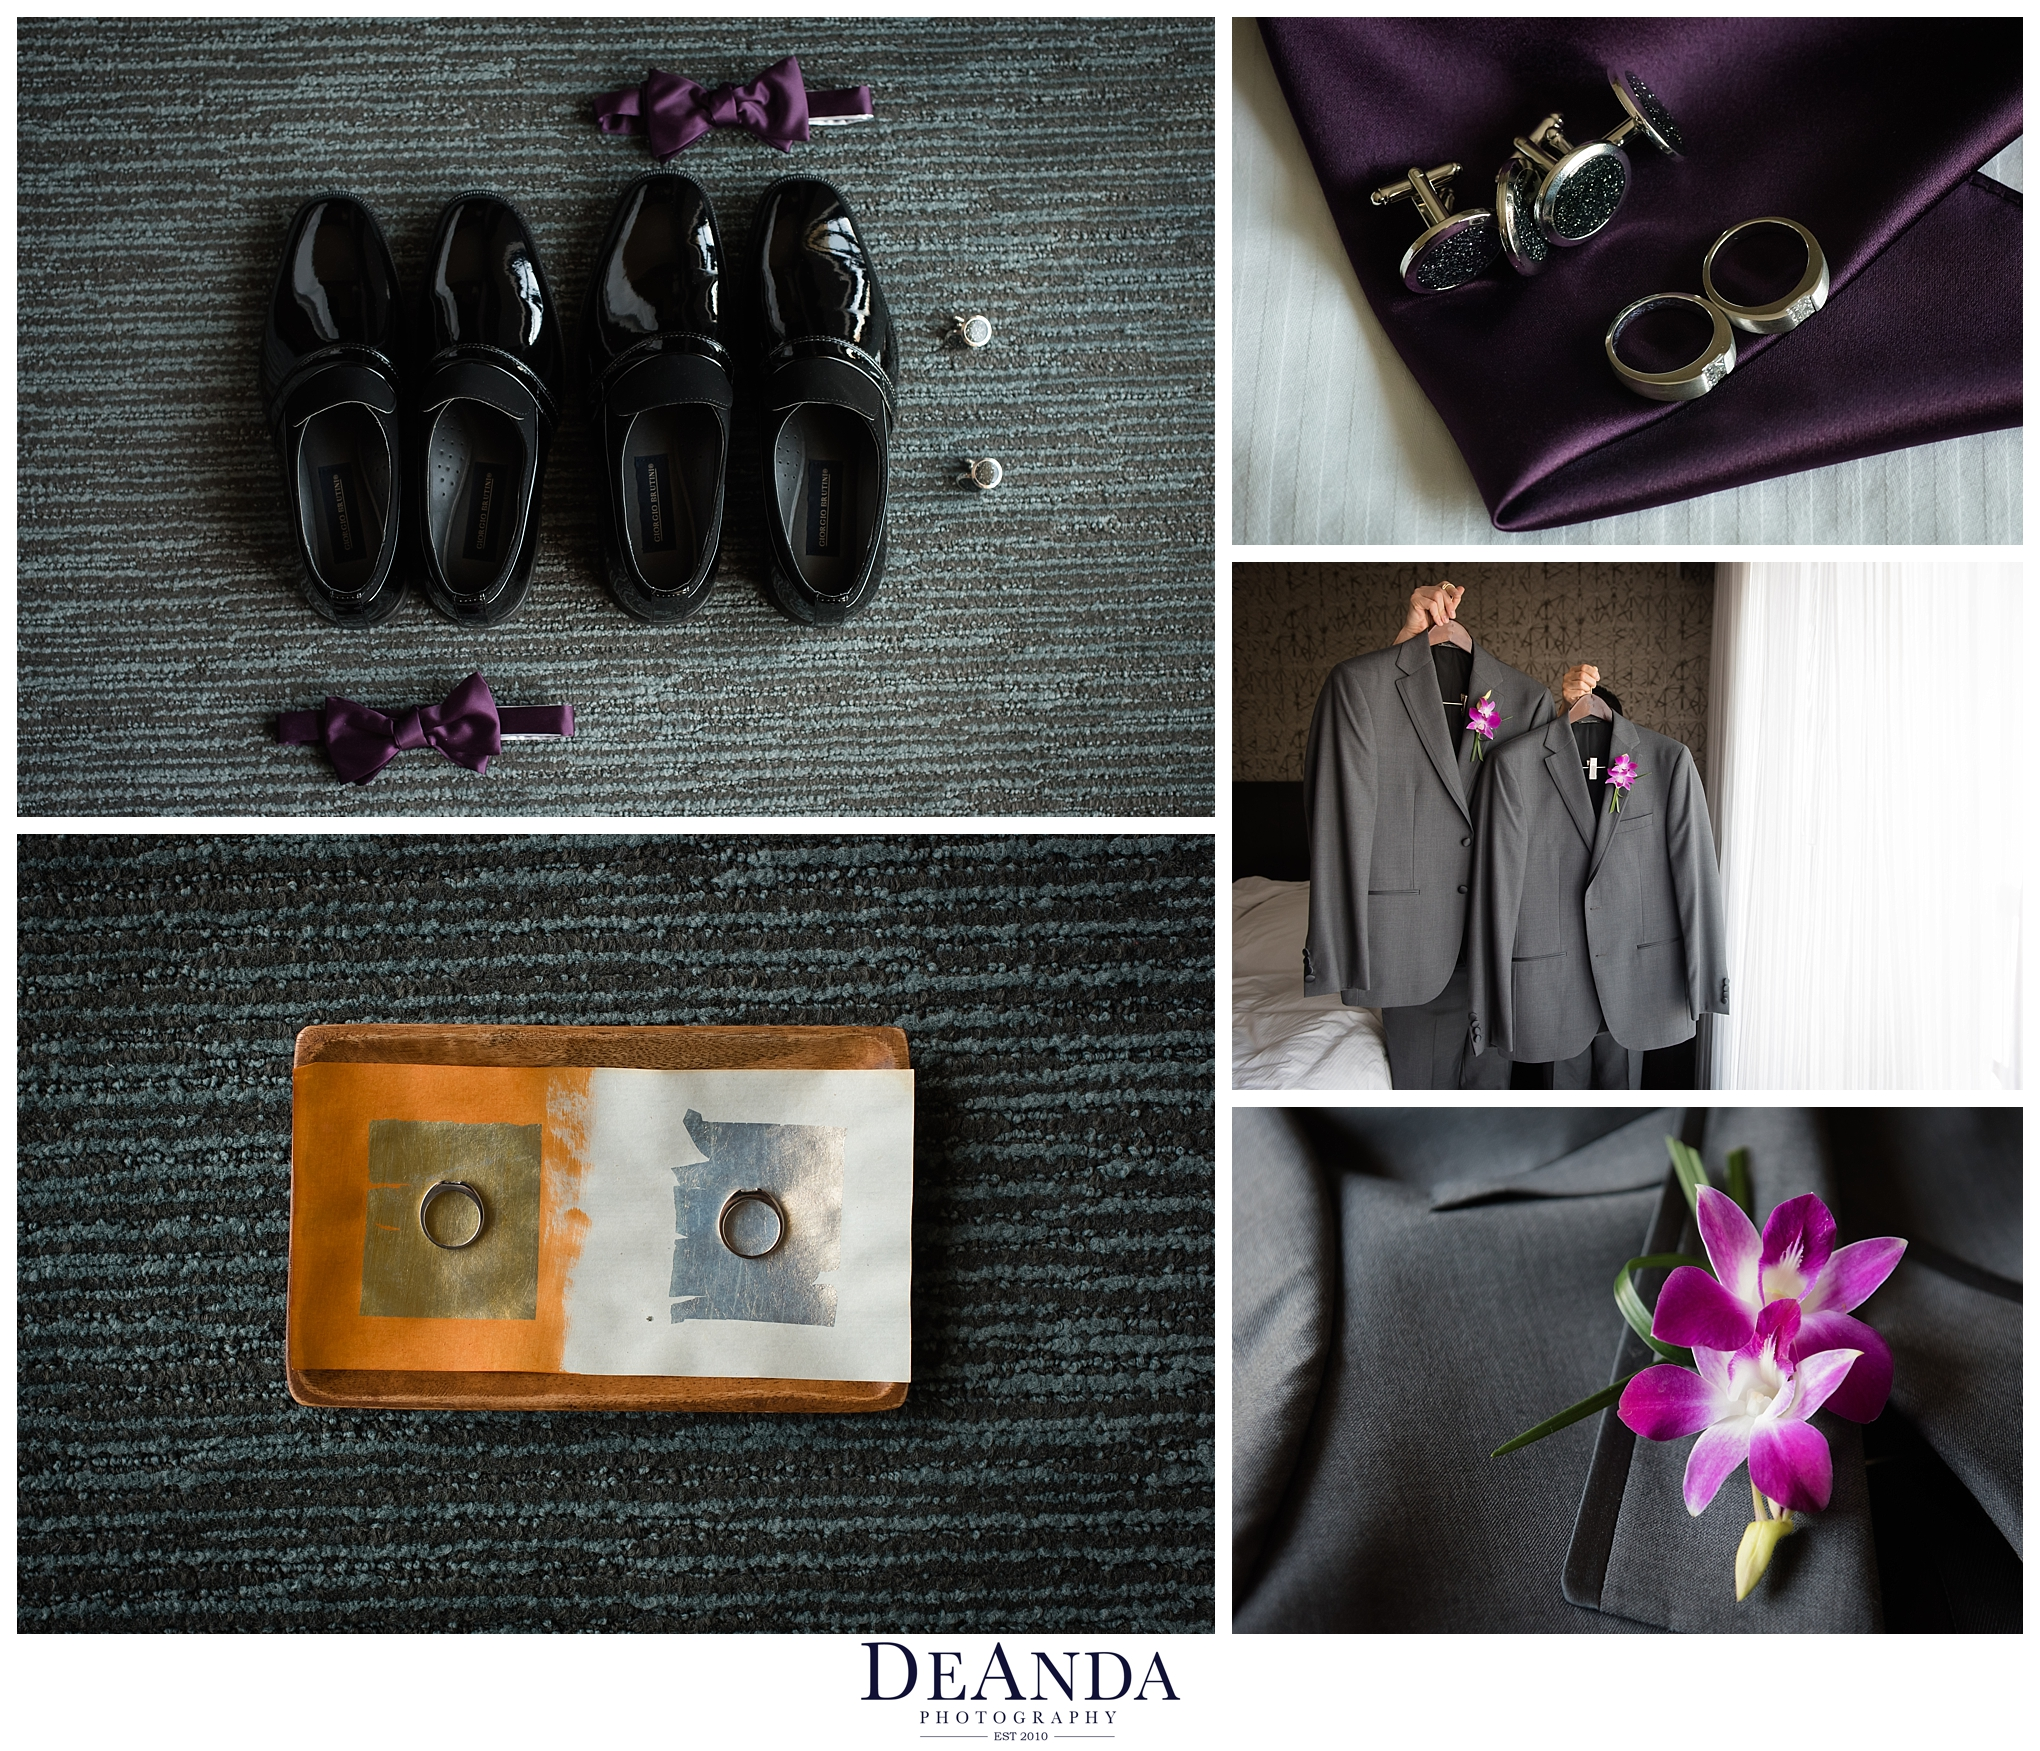 two grooms wedding details photographed together